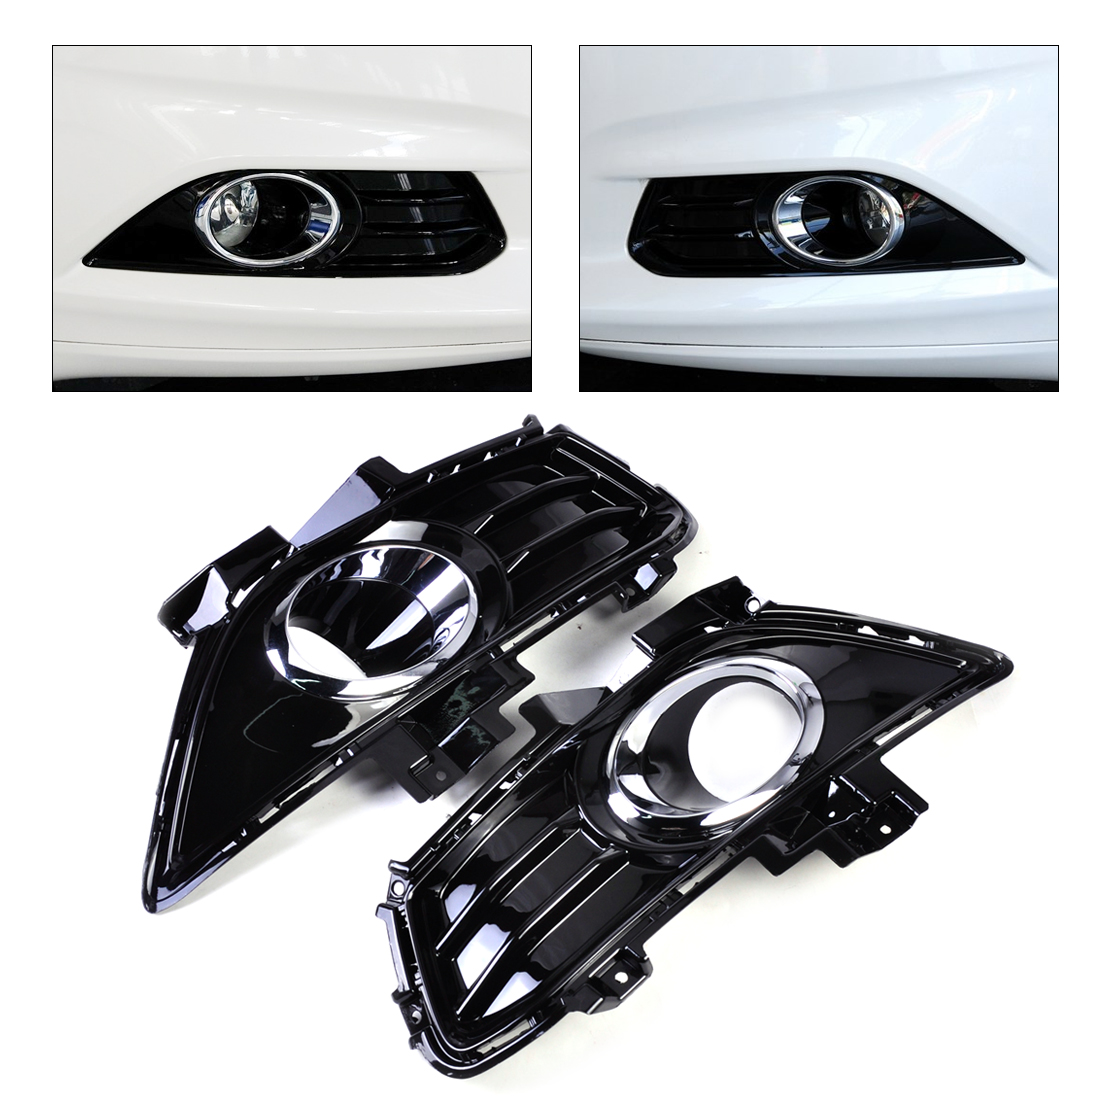 DWCX DS73-19952CAW SL666 Gloss Fog Light Lamp Grill Grille Cover for Ford Fusion / Mondeo 2013 2014 2015<br>